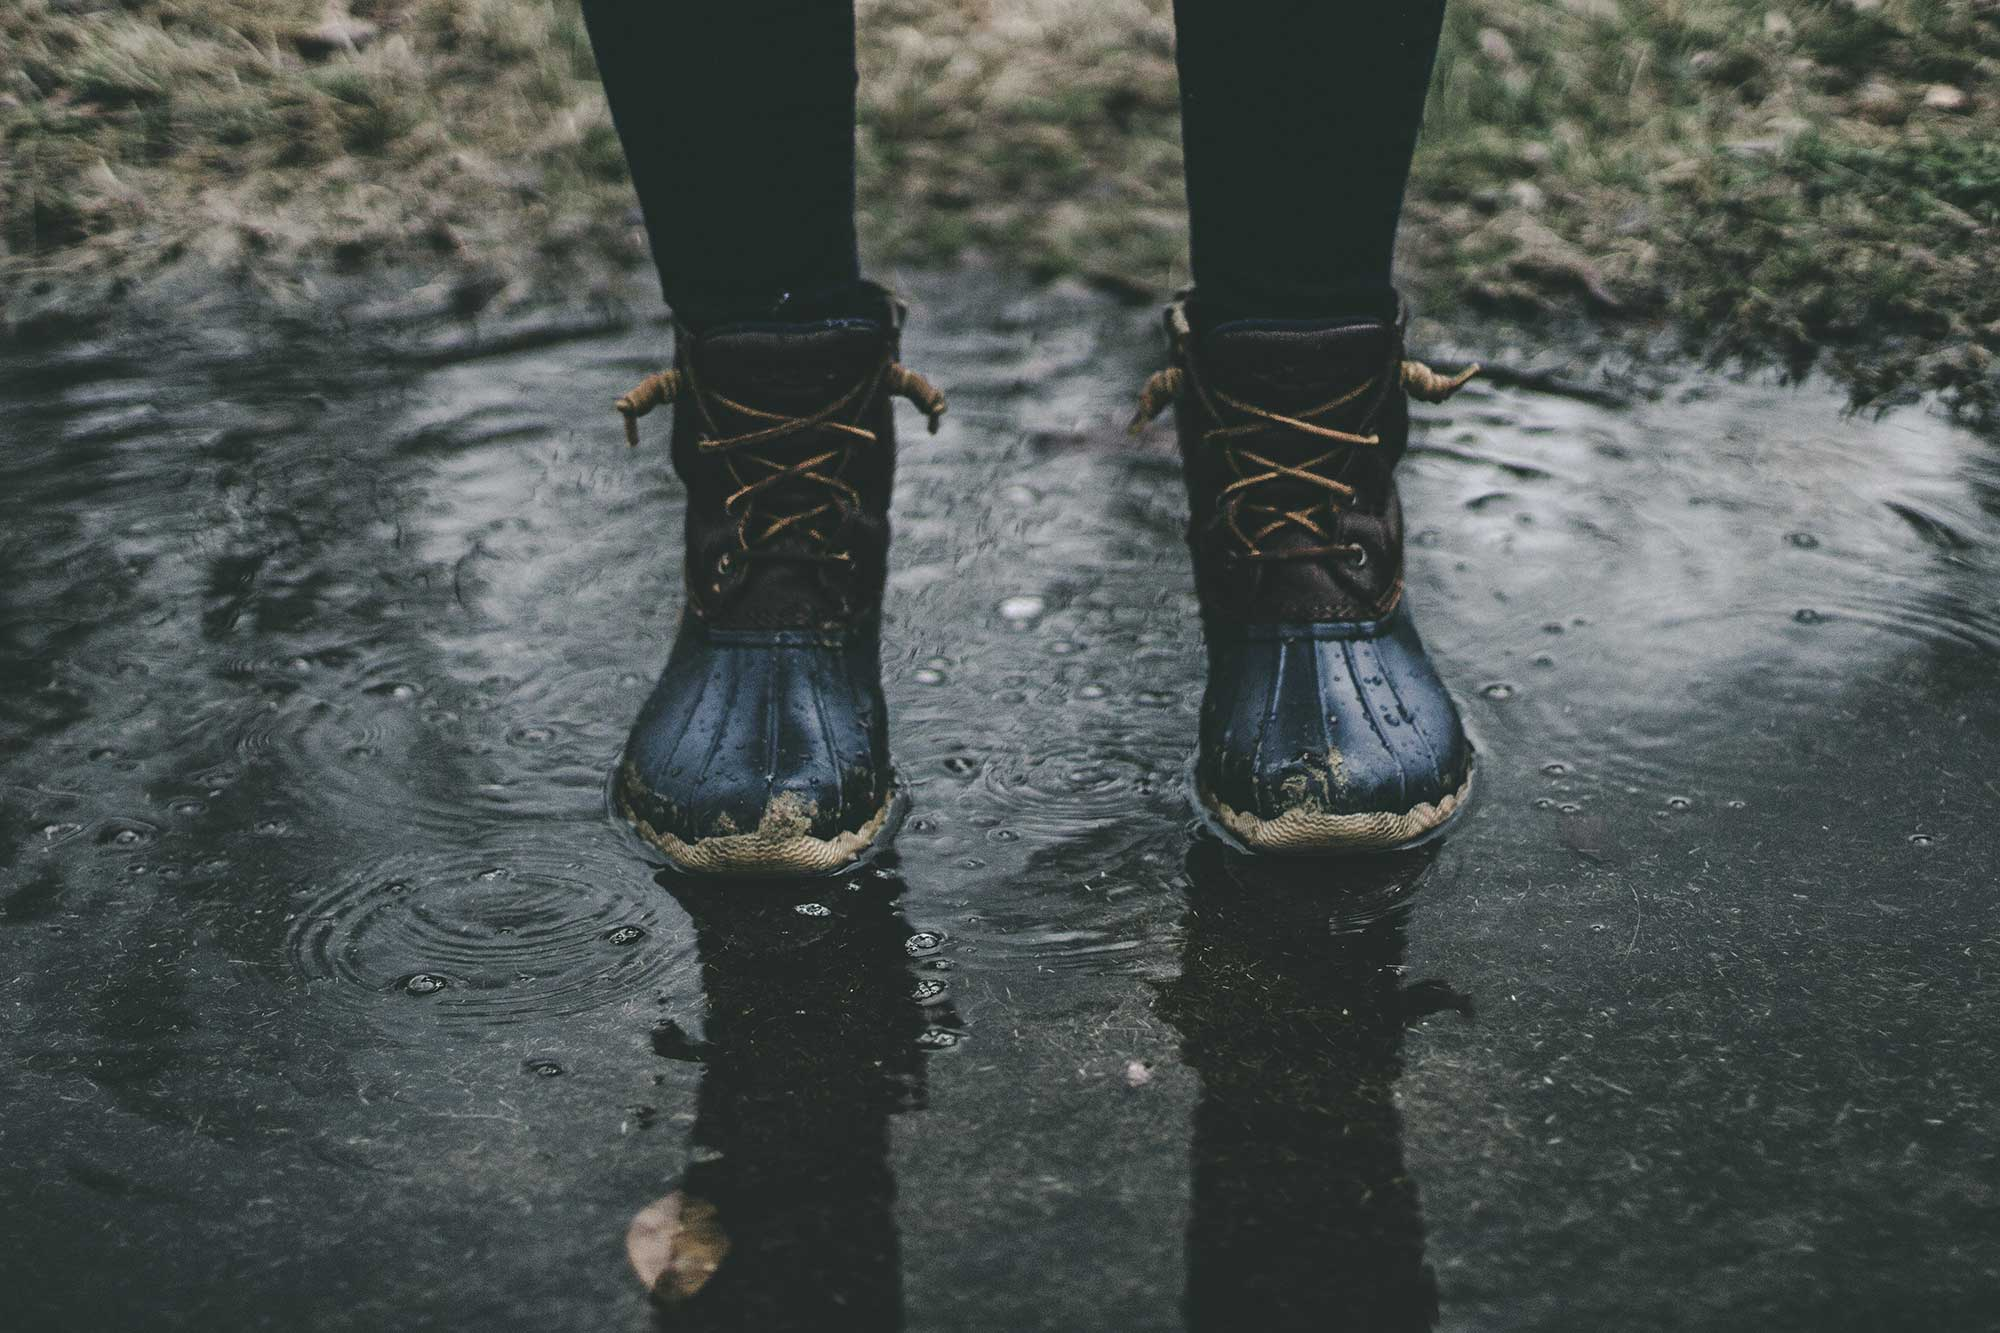 Person standing in a puddle with mudboots on